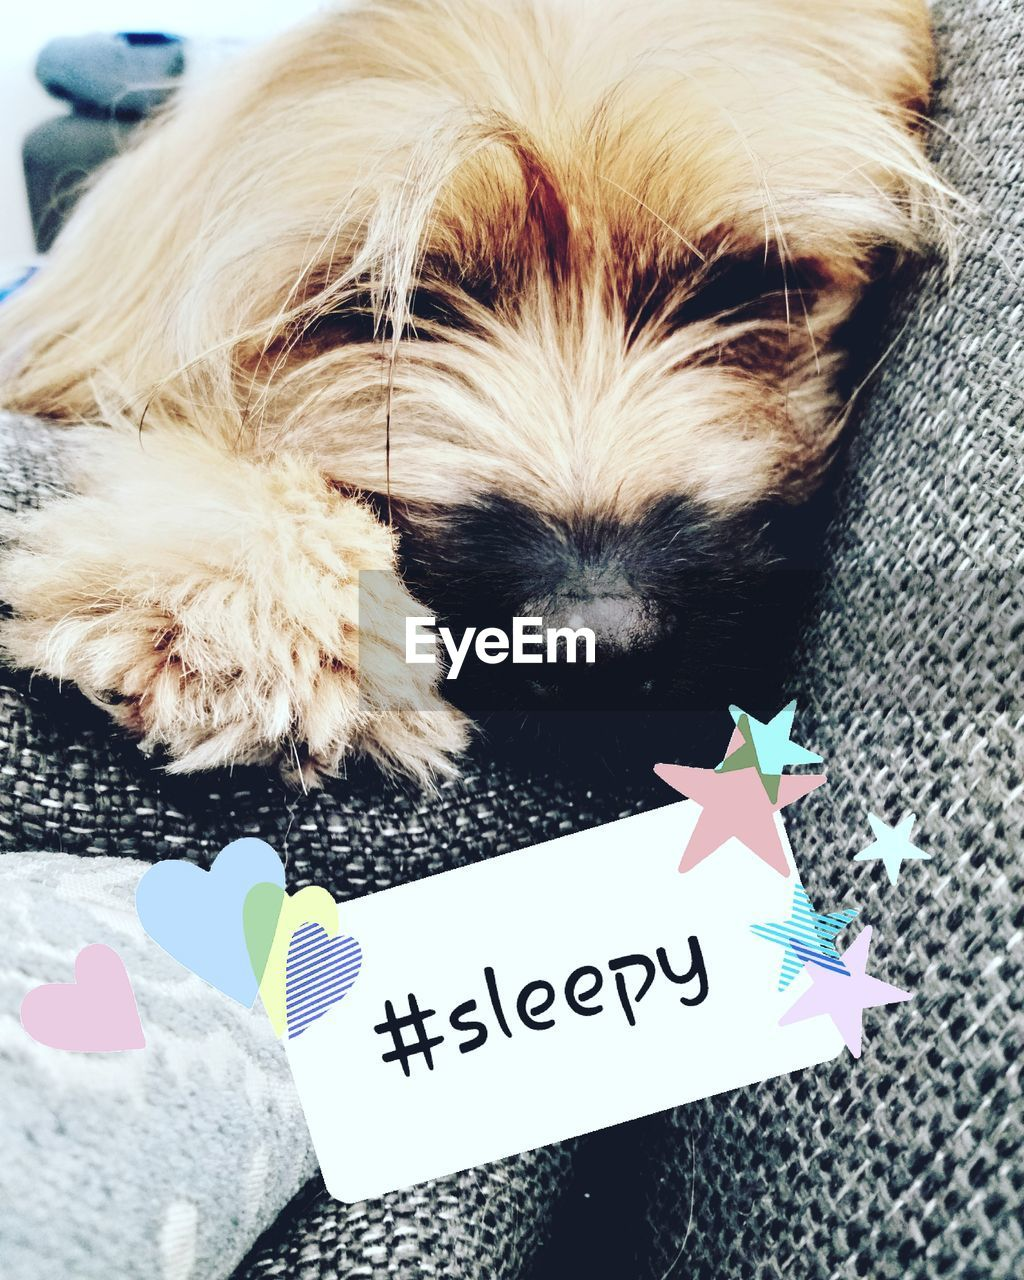 animal, animal themes, one animal, vertebrate, mammal, domestic, canine, domestic animals, dog, pets, close-up, no people, relaxation, indoors, high angle view, animal hair, communication, day, text, home interior, shih tzu